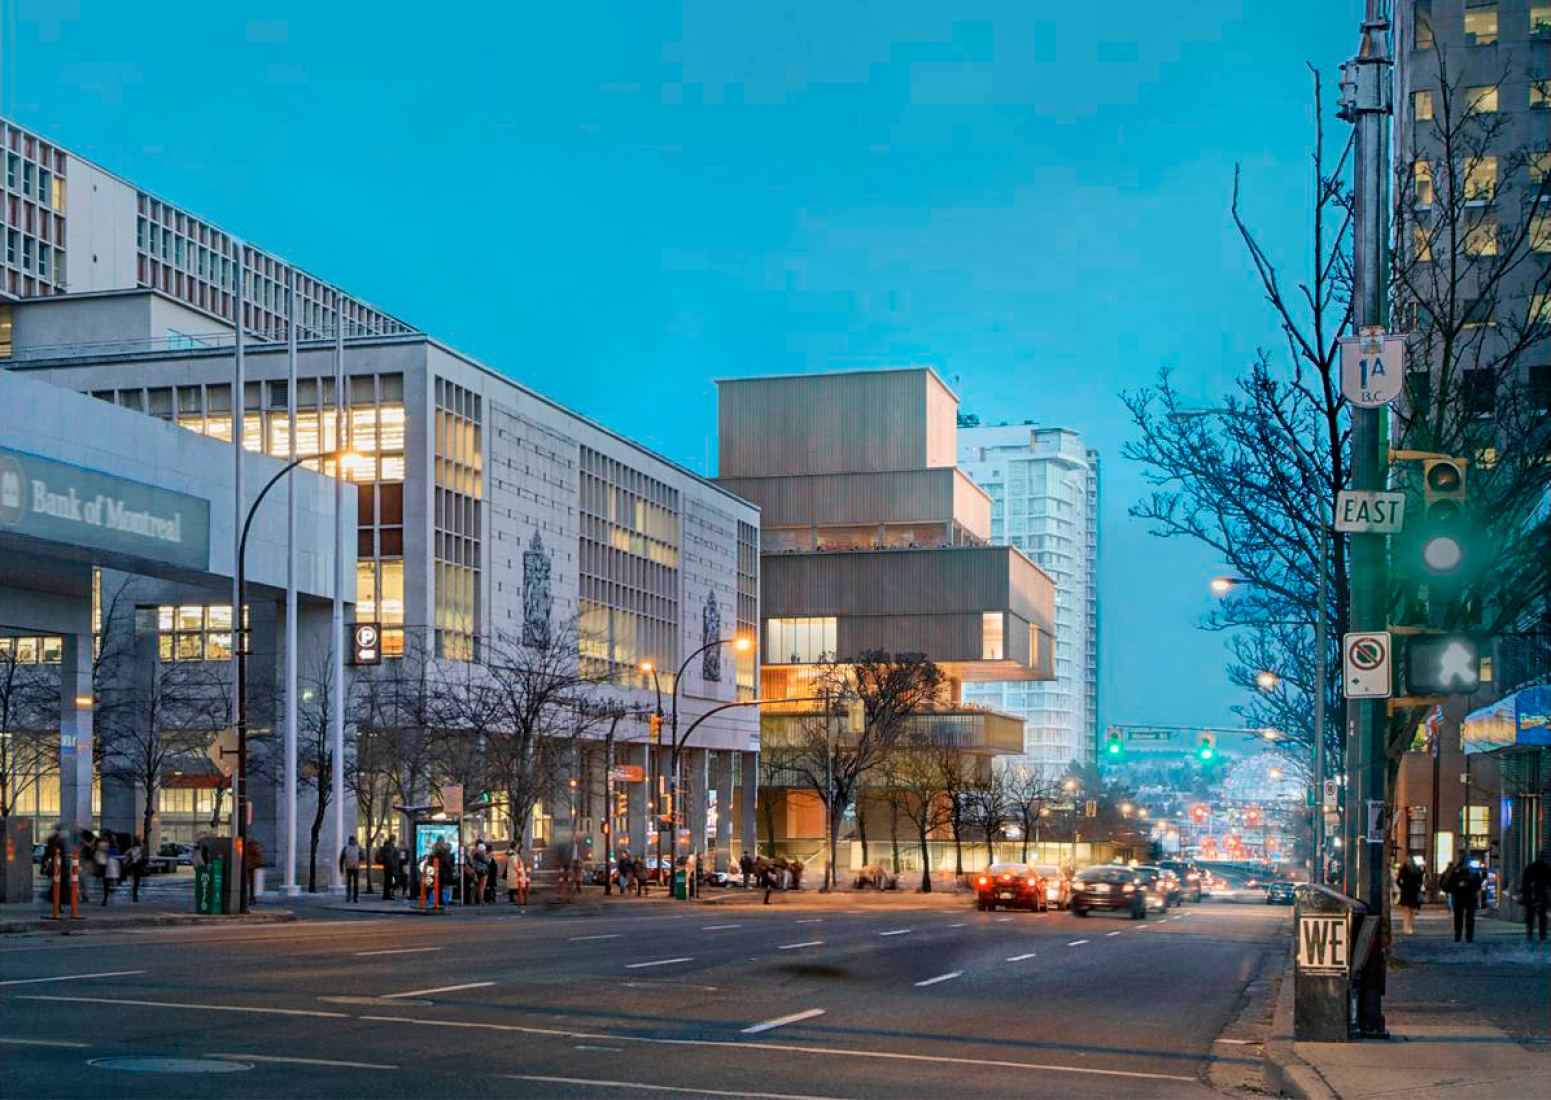 Rendering of the proposed Vancouver Art Gallery at night. Conceptual Design by Herzog & de Meuron. Image courtesy of the Vancouver Art Gallery.